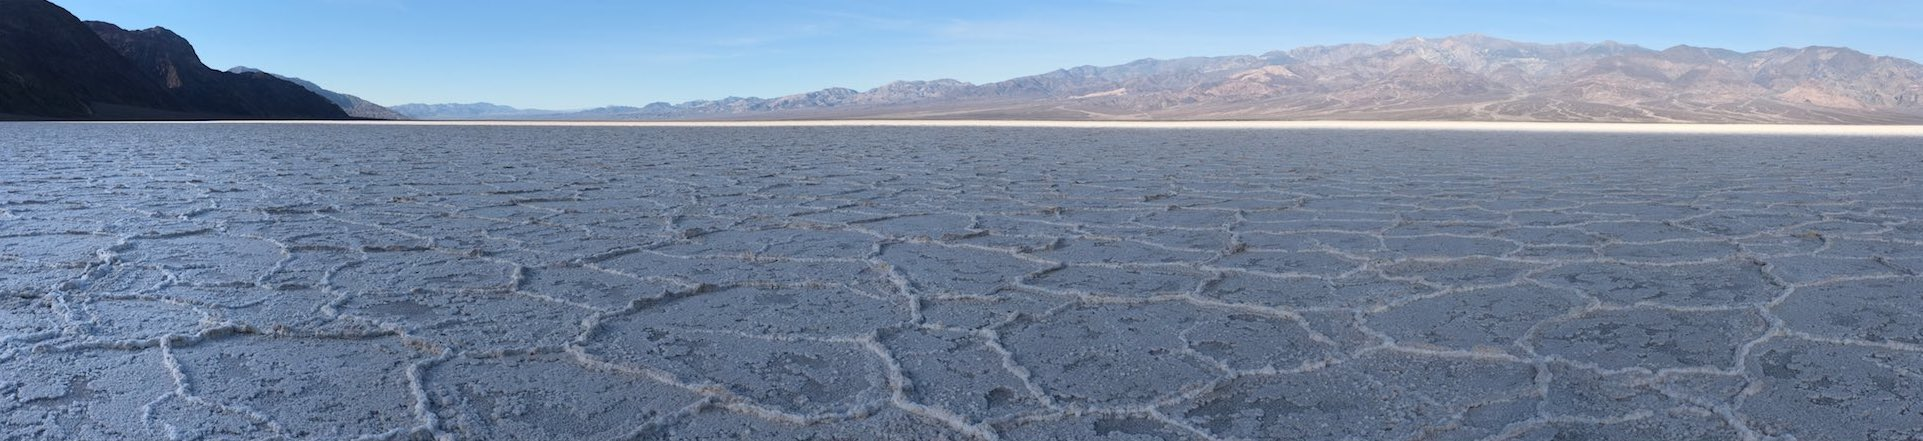 Badwater Basin 5 May, 2018; 7:22 AM Copyright © Tennyson Woodbridge, 1963 to present